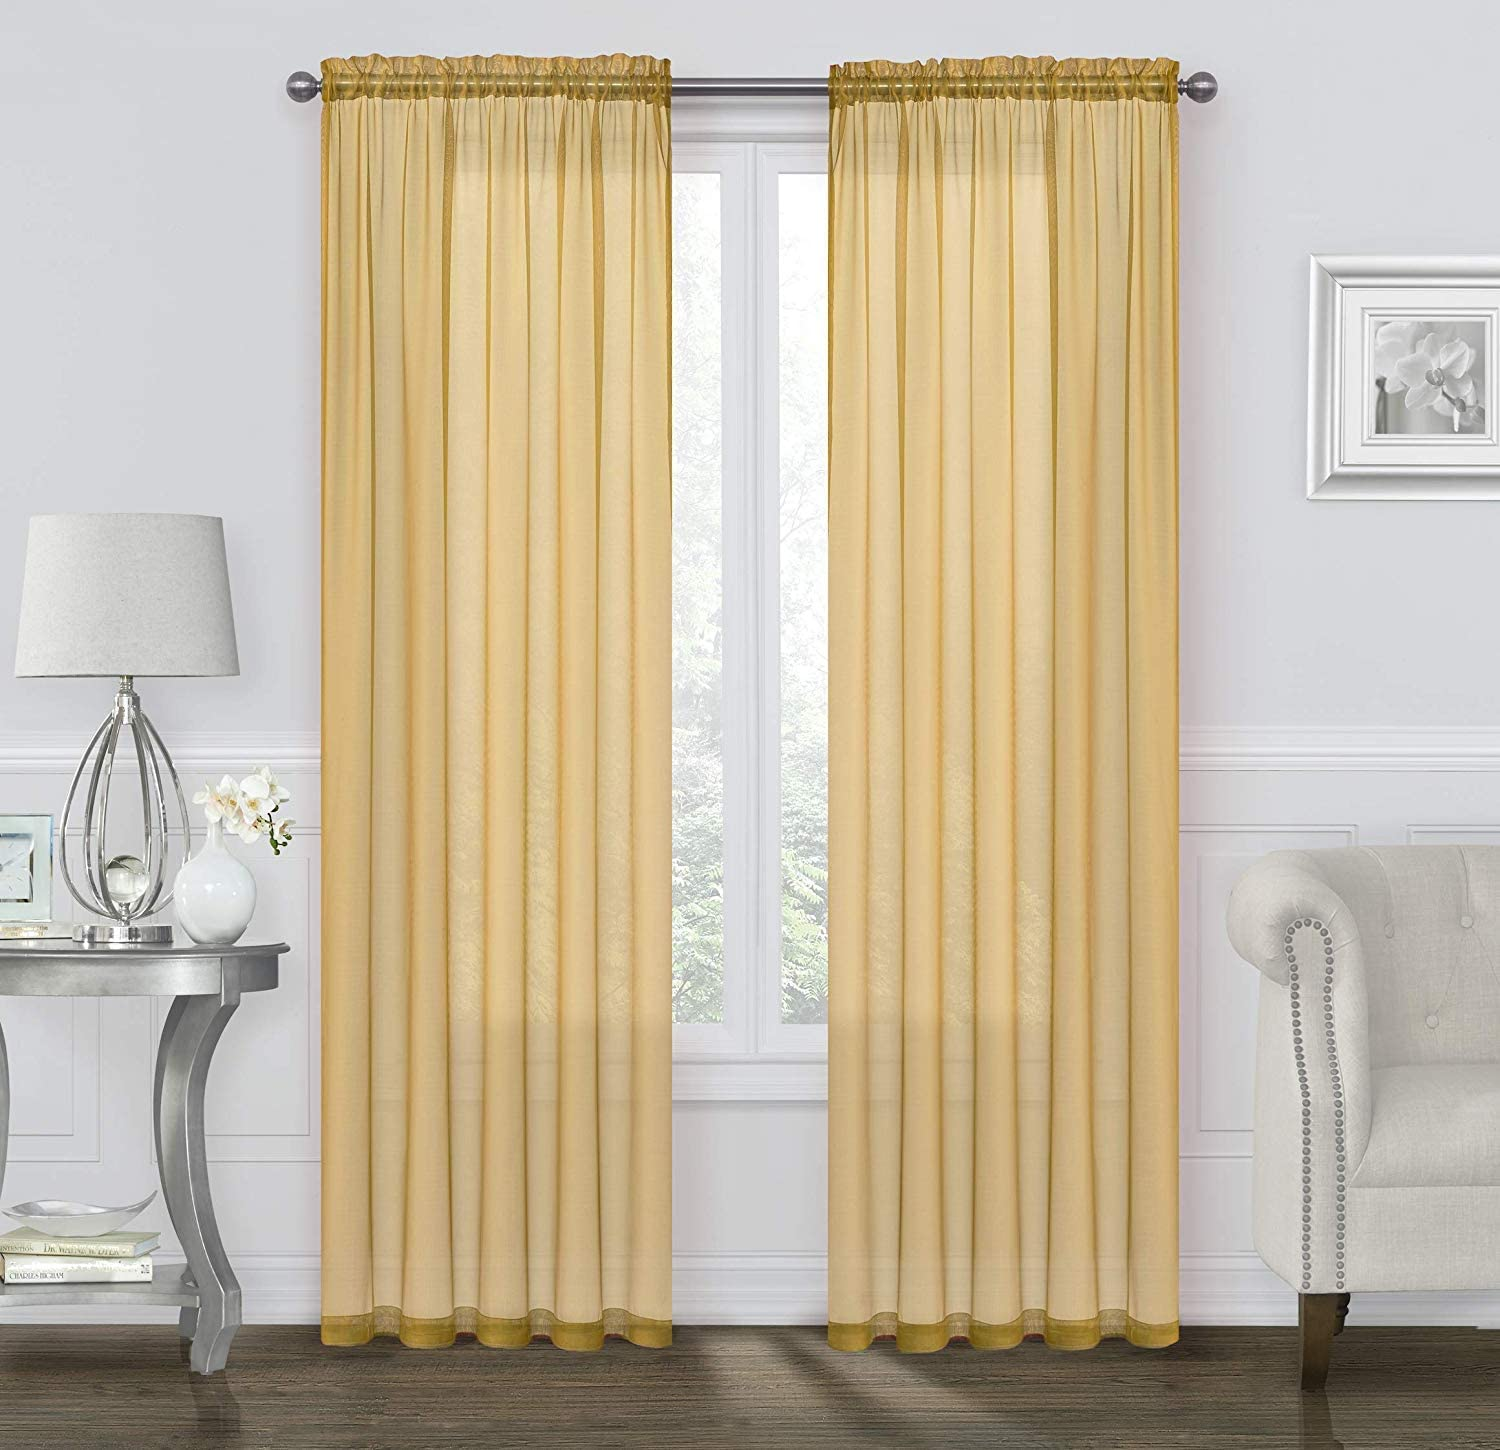 Basic Rod Pocket Sheer Voile Window Curtain Panels Baby Blue, 63 in. Long Pair Assorted Colors /& Sizes GoodGram 2 Pack